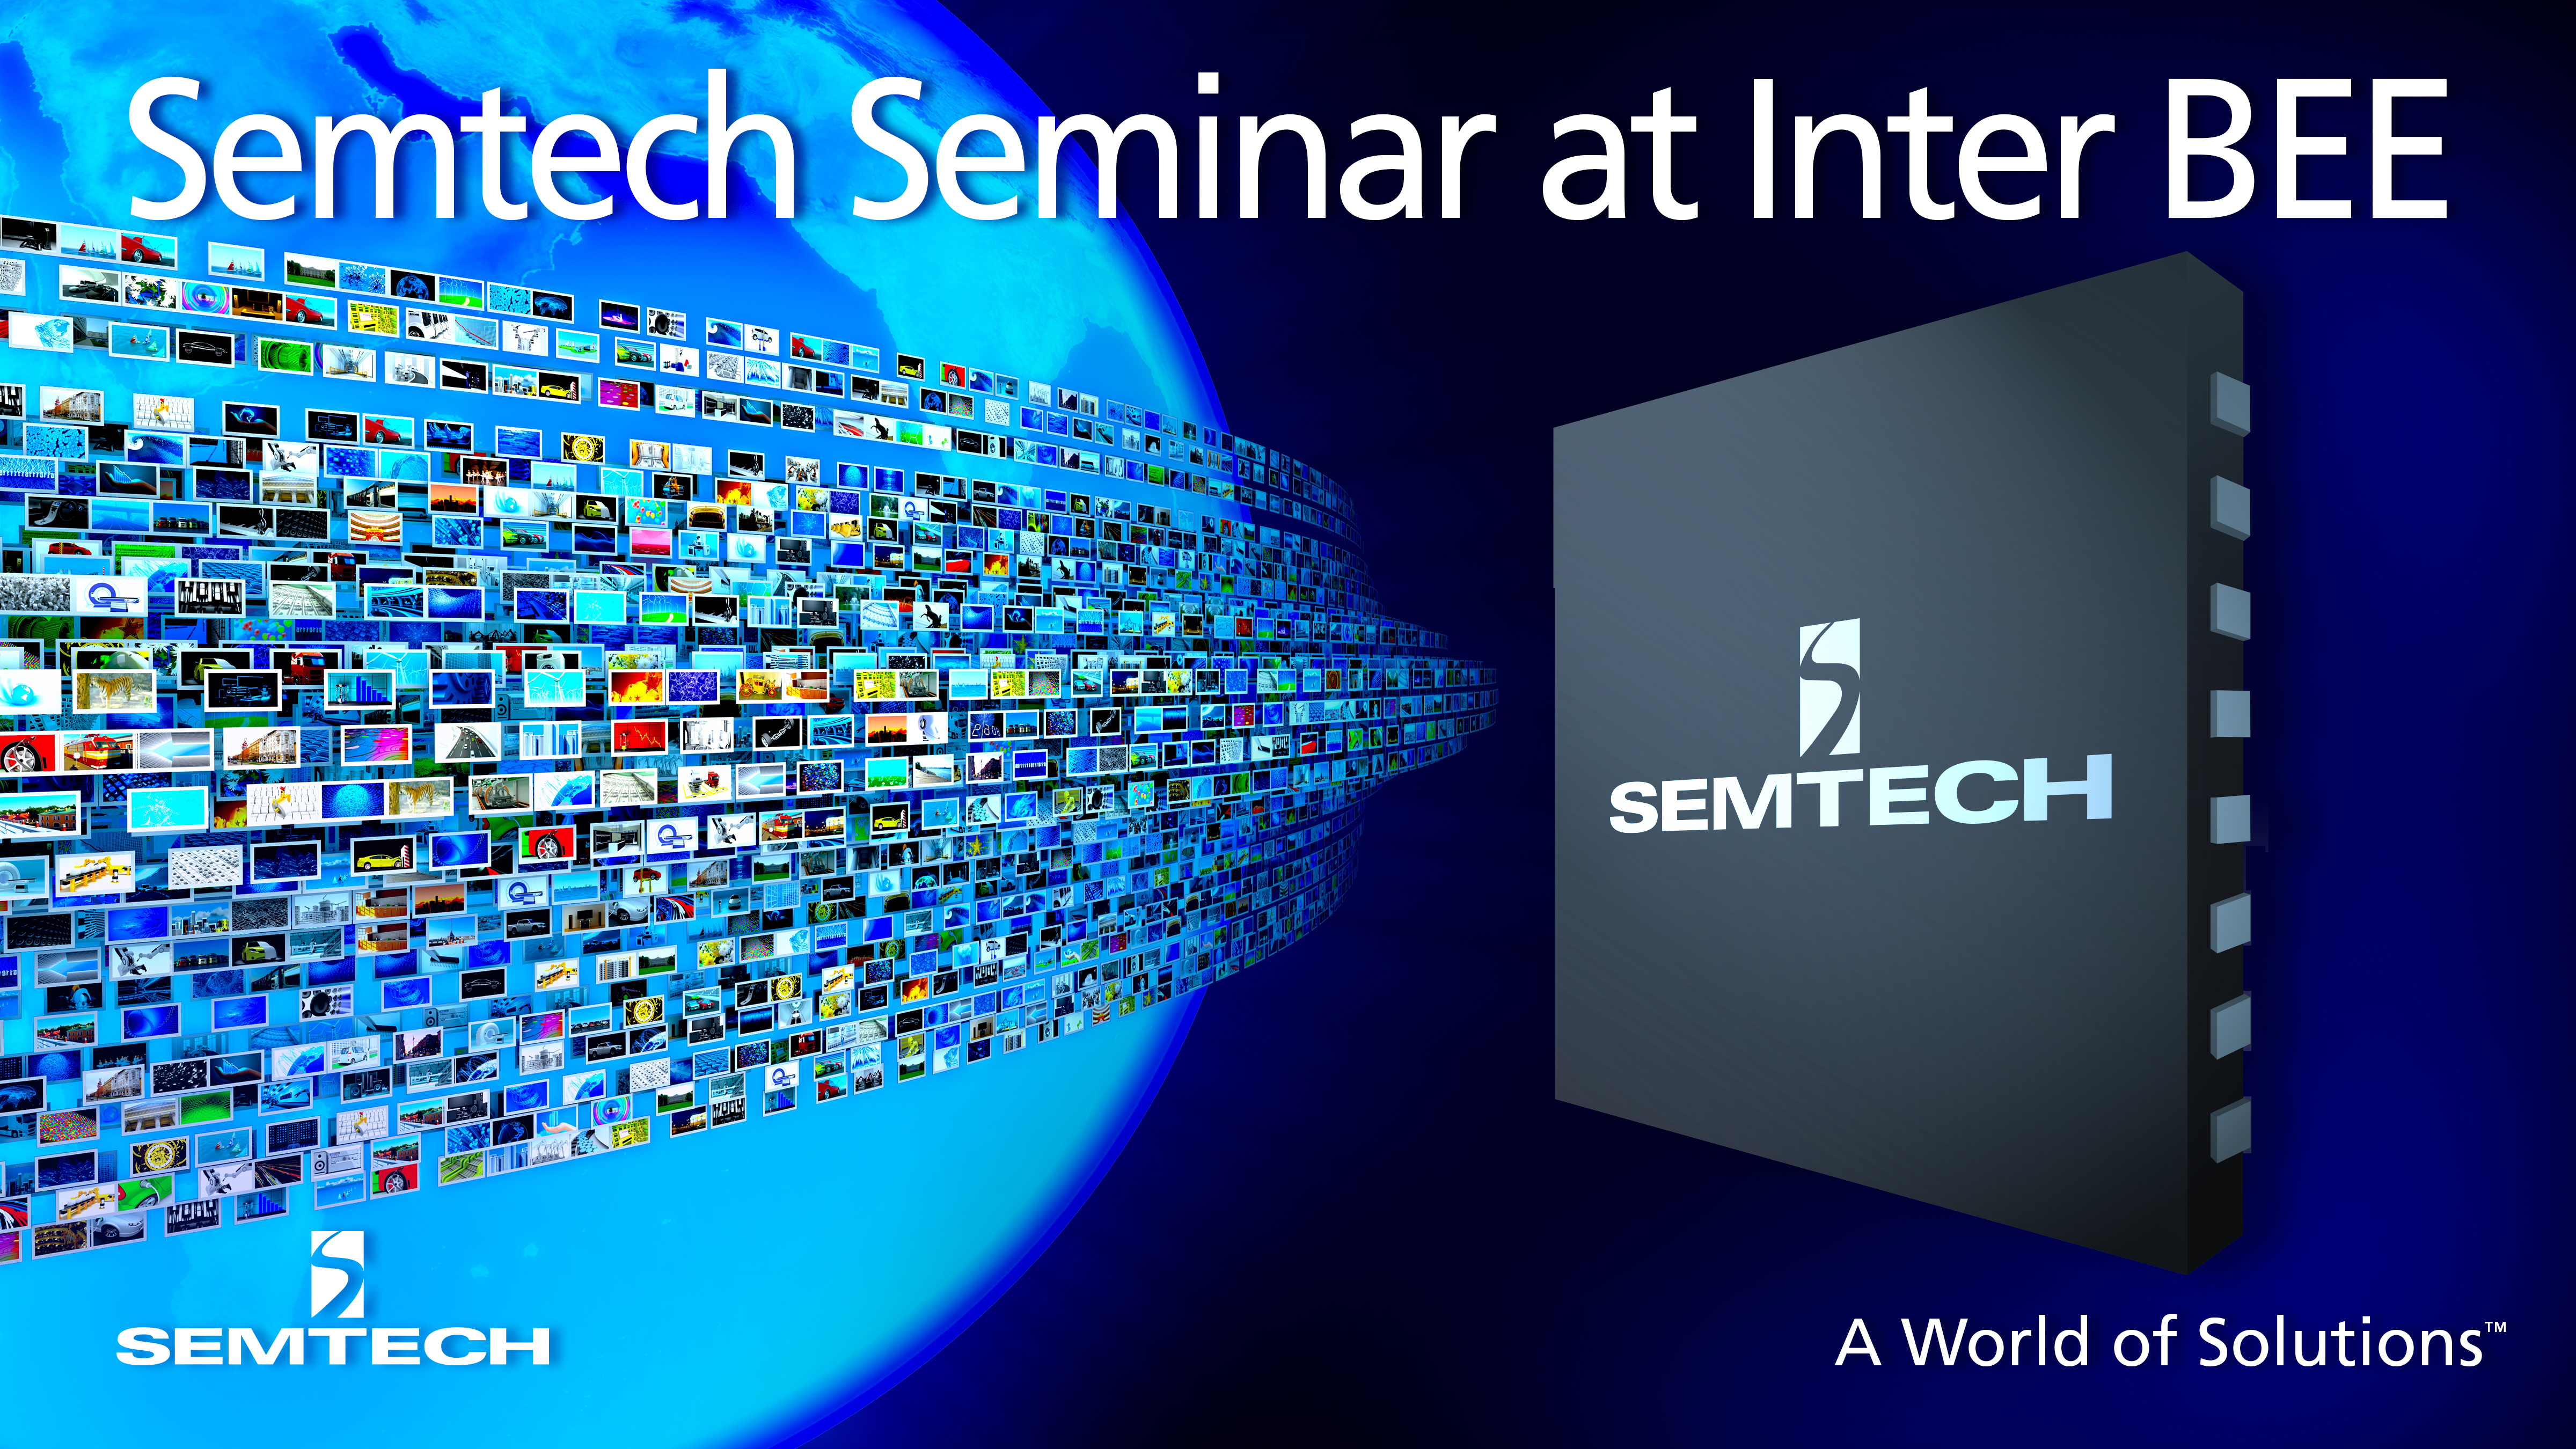 Semtech to Lead UHD-SDI Standards and Technology Seminar at Inter BEE